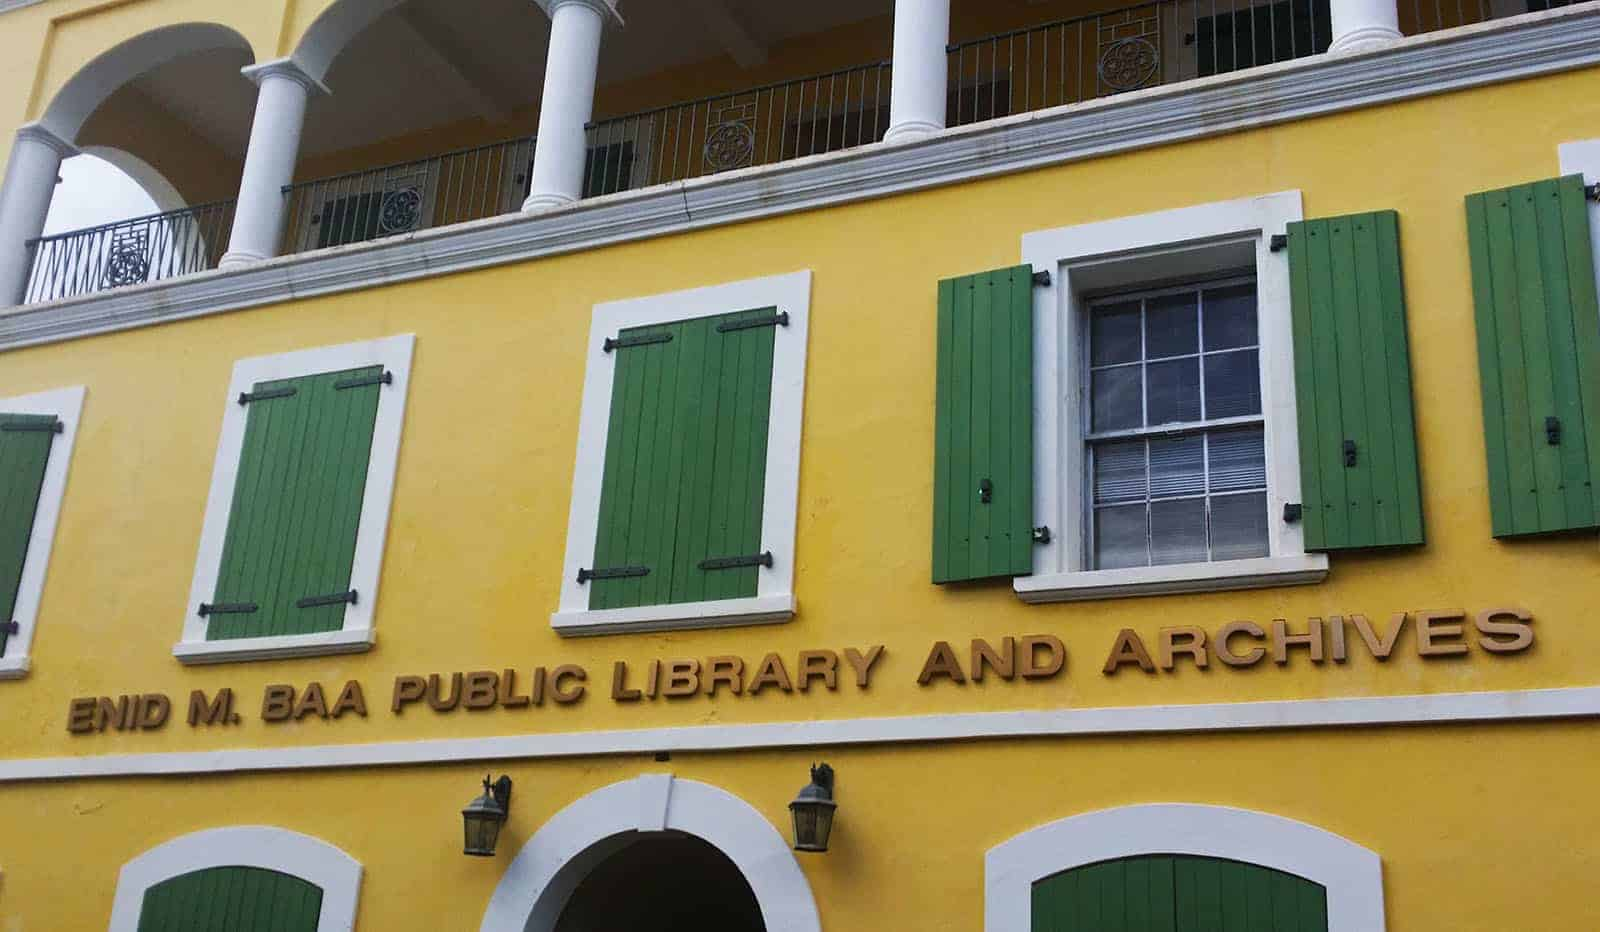 Public Library in Charlotte Amalie, St. Thomas